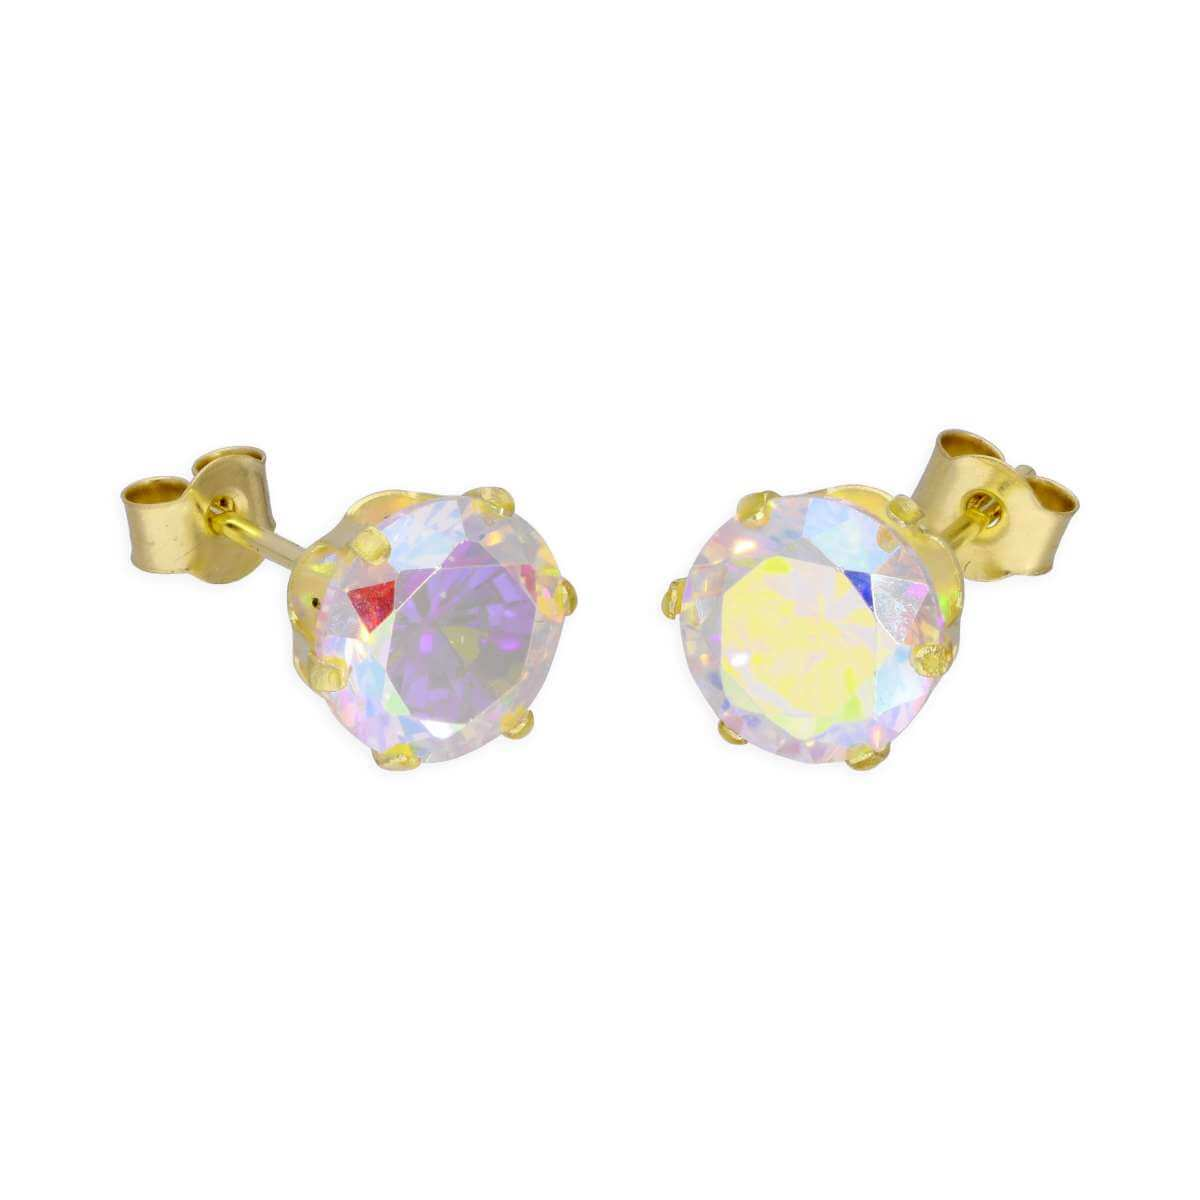 9ct Yellow Gold & 6mm Aurora Borealis CZ Crystal Stud Earrings